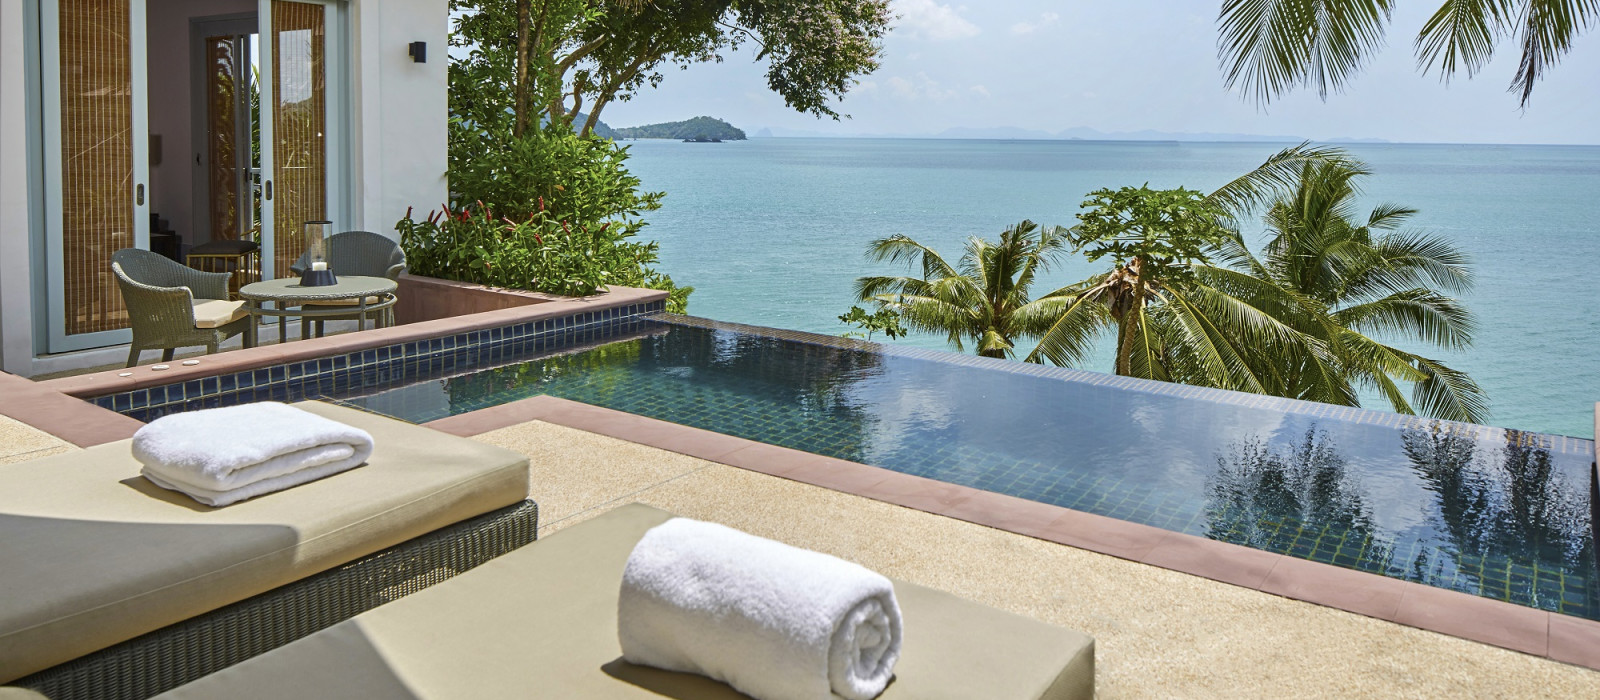 Luxury Spa Getaway in Thailand Tour Trip 1